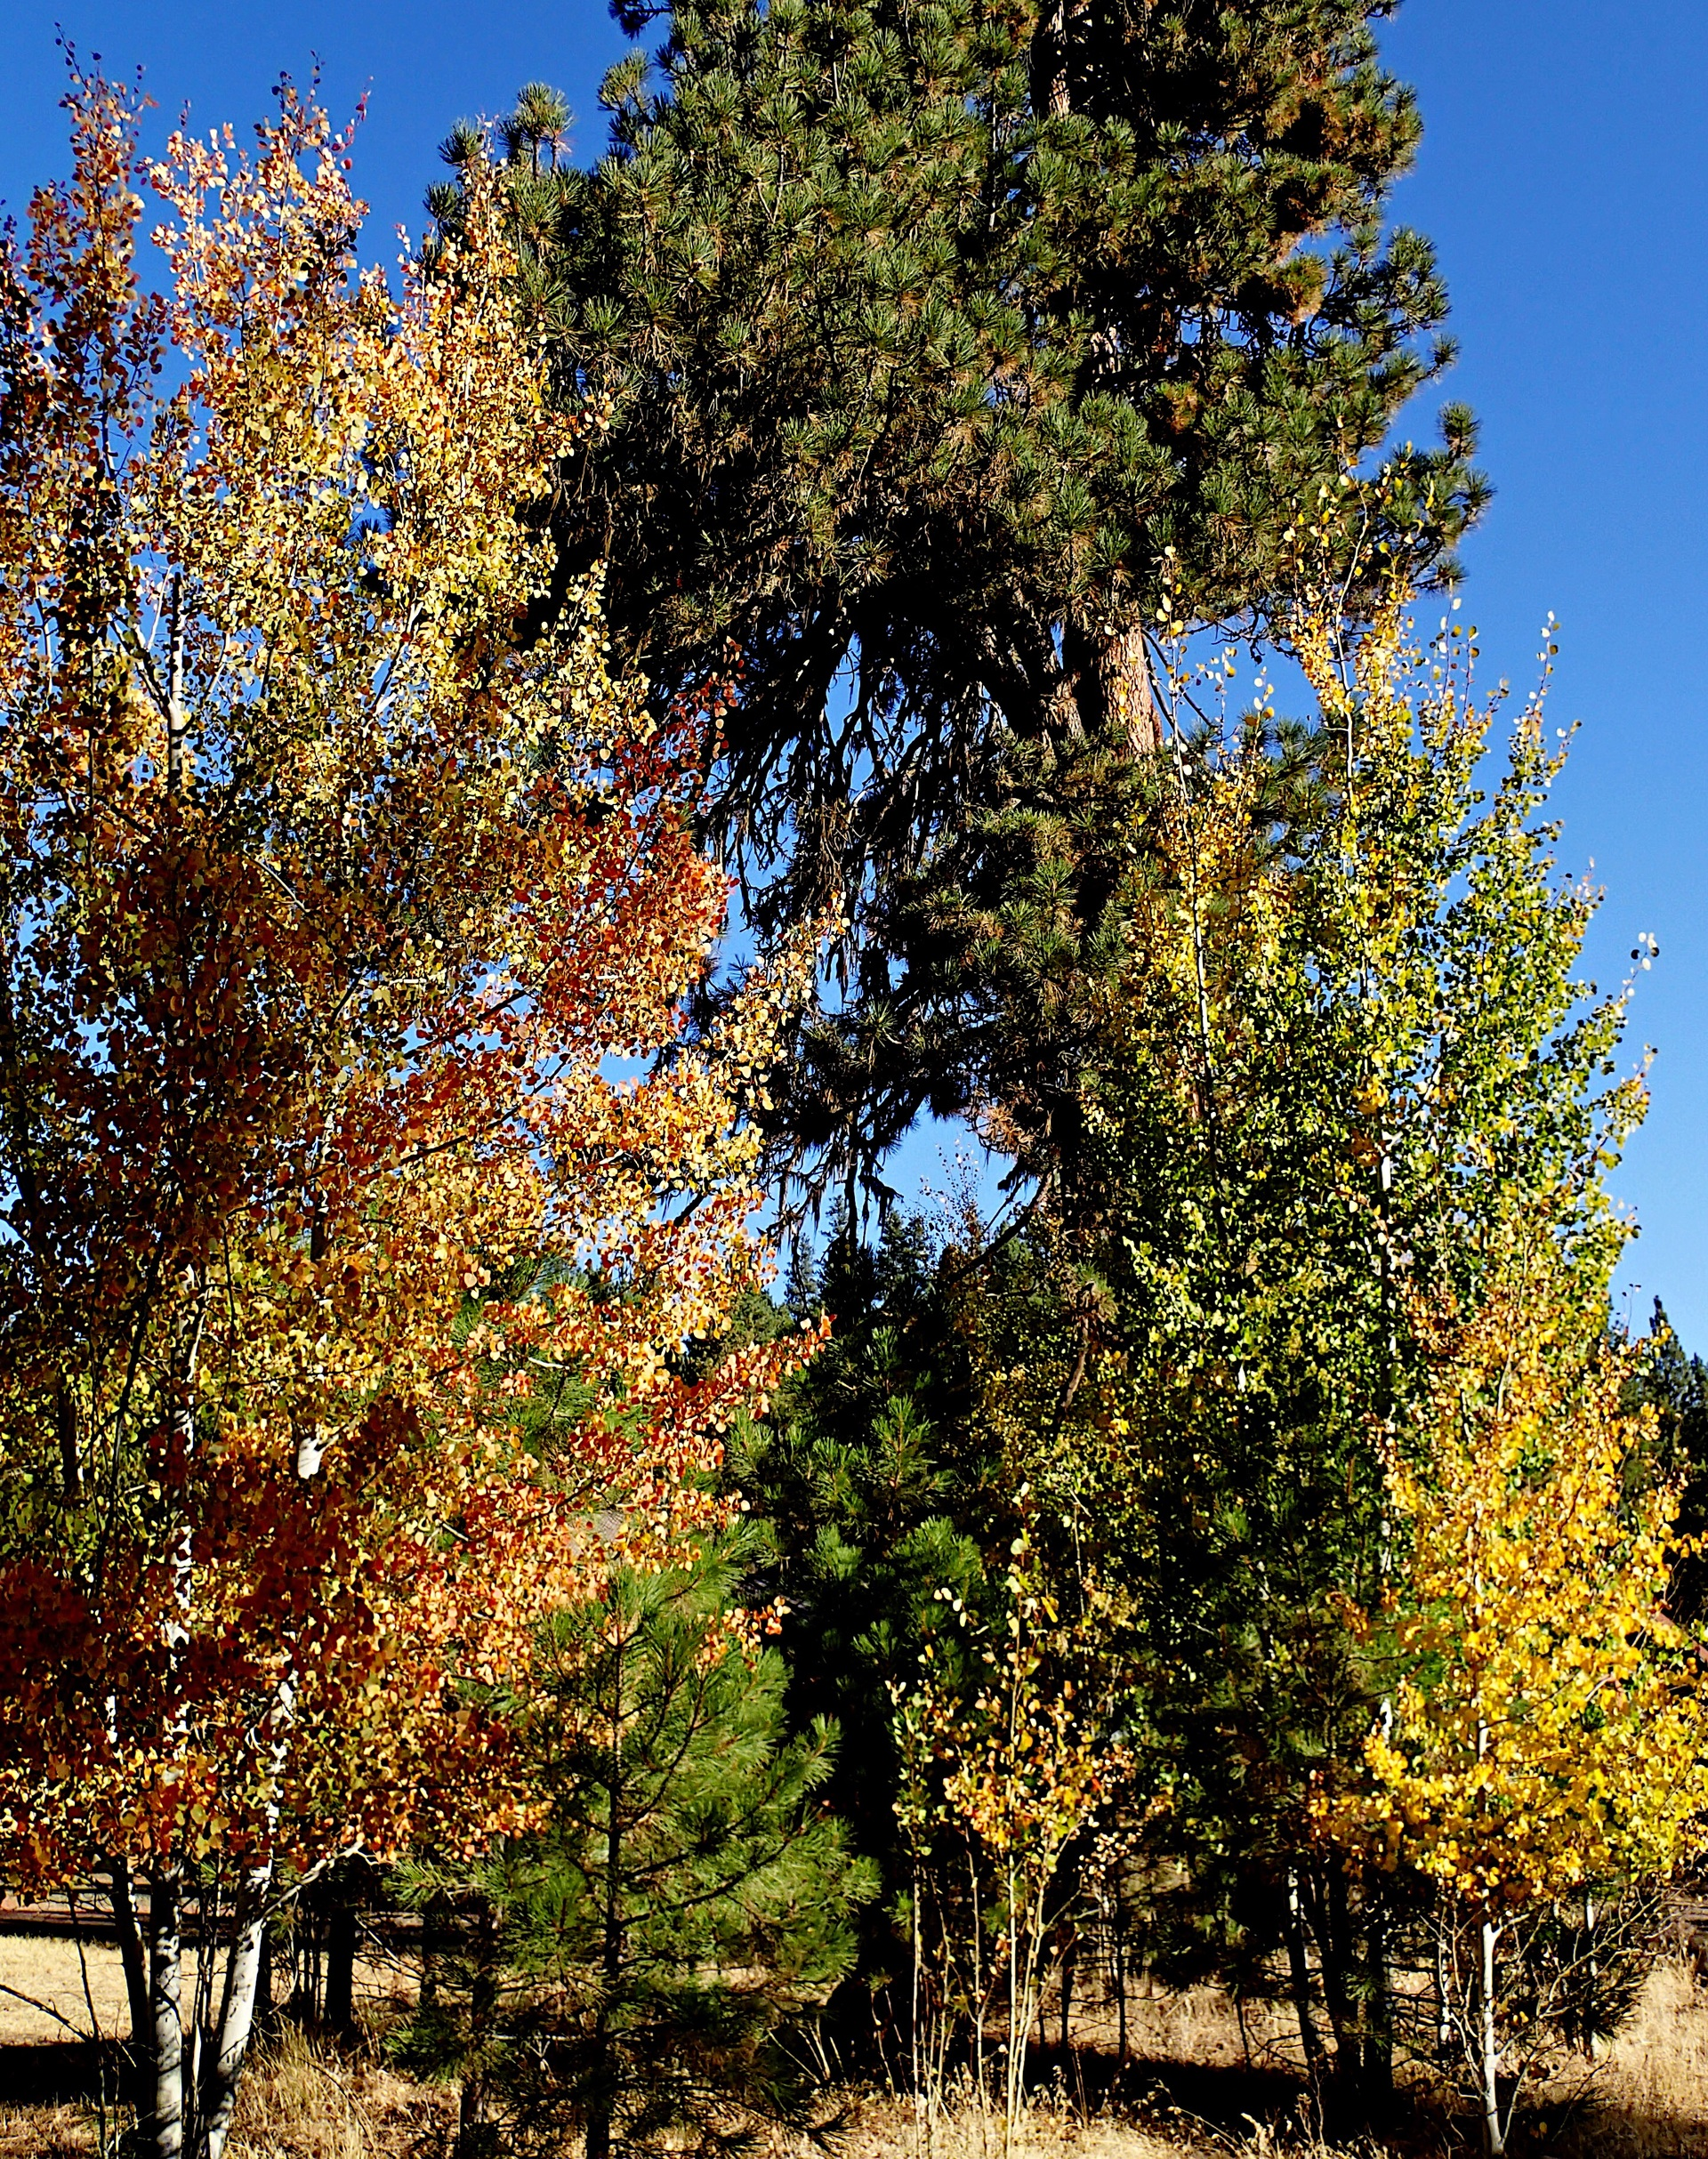 Beautiful deciduous trees in their brilliant fall colors of red, yellow, orange, and gold amongst tall ponderosa pine trees in the forests of Central Oregon on a sunny and clear fall day.